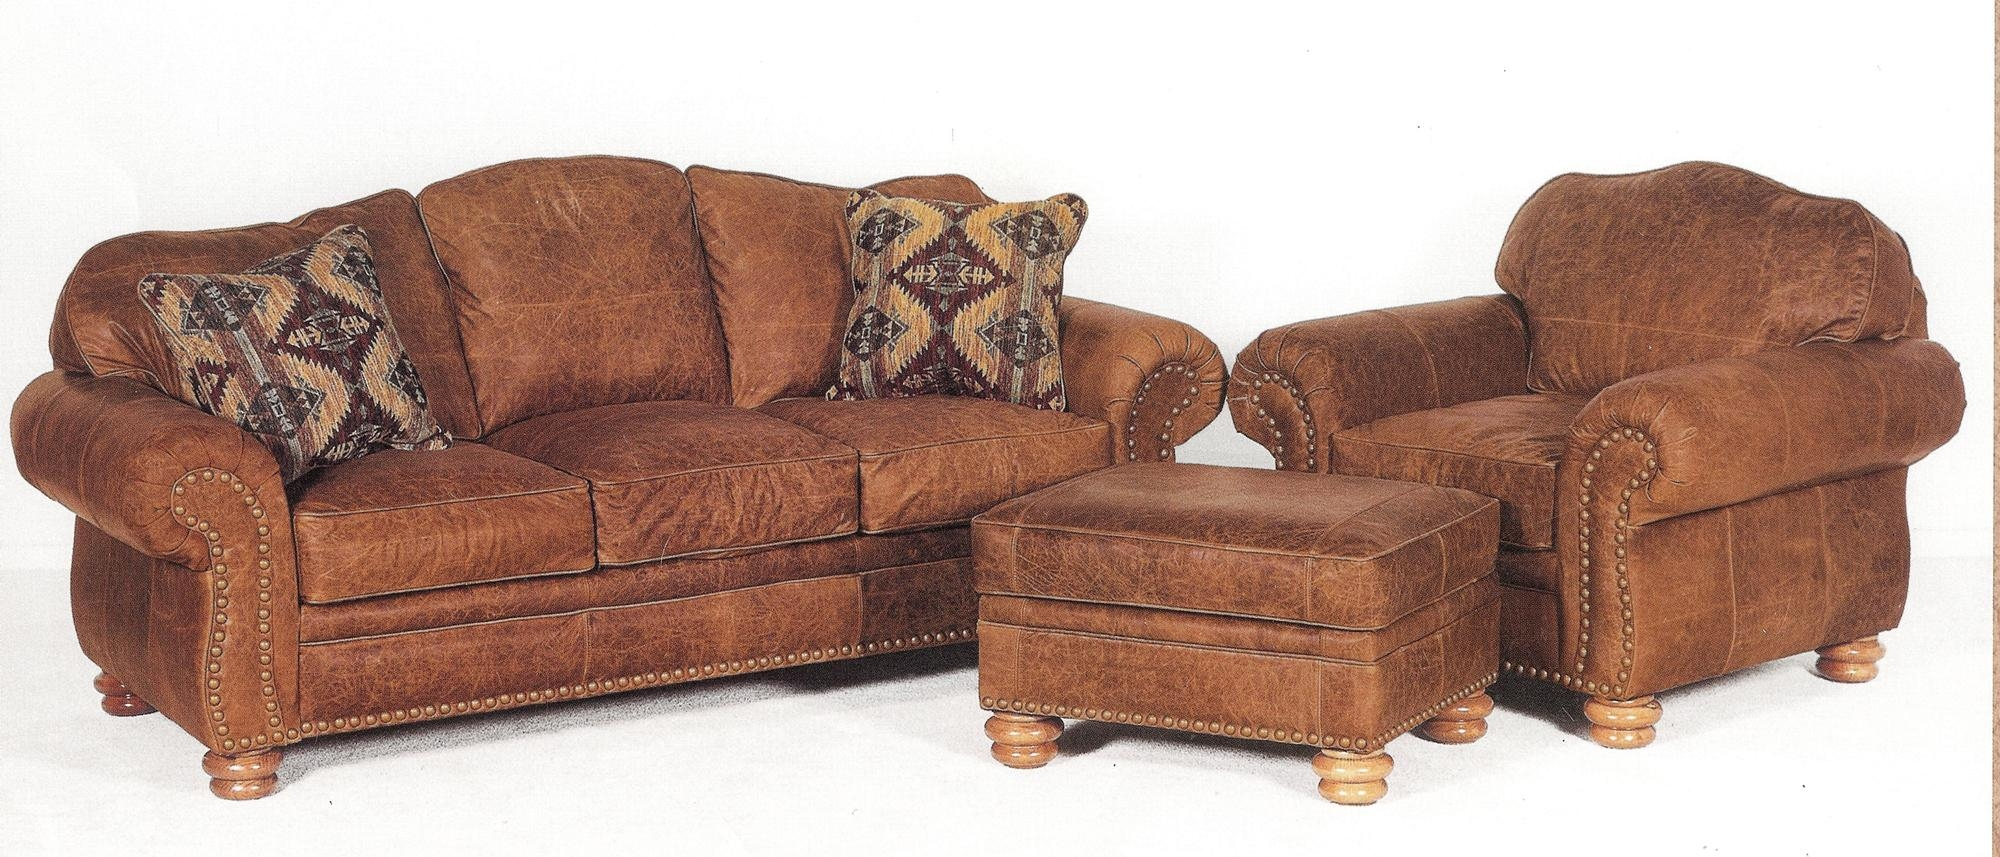 Worn Leather Sofa And This Distressed Leather Sofa, Chair And With Sofa Chair And Ottoman (Image 20 of 20)